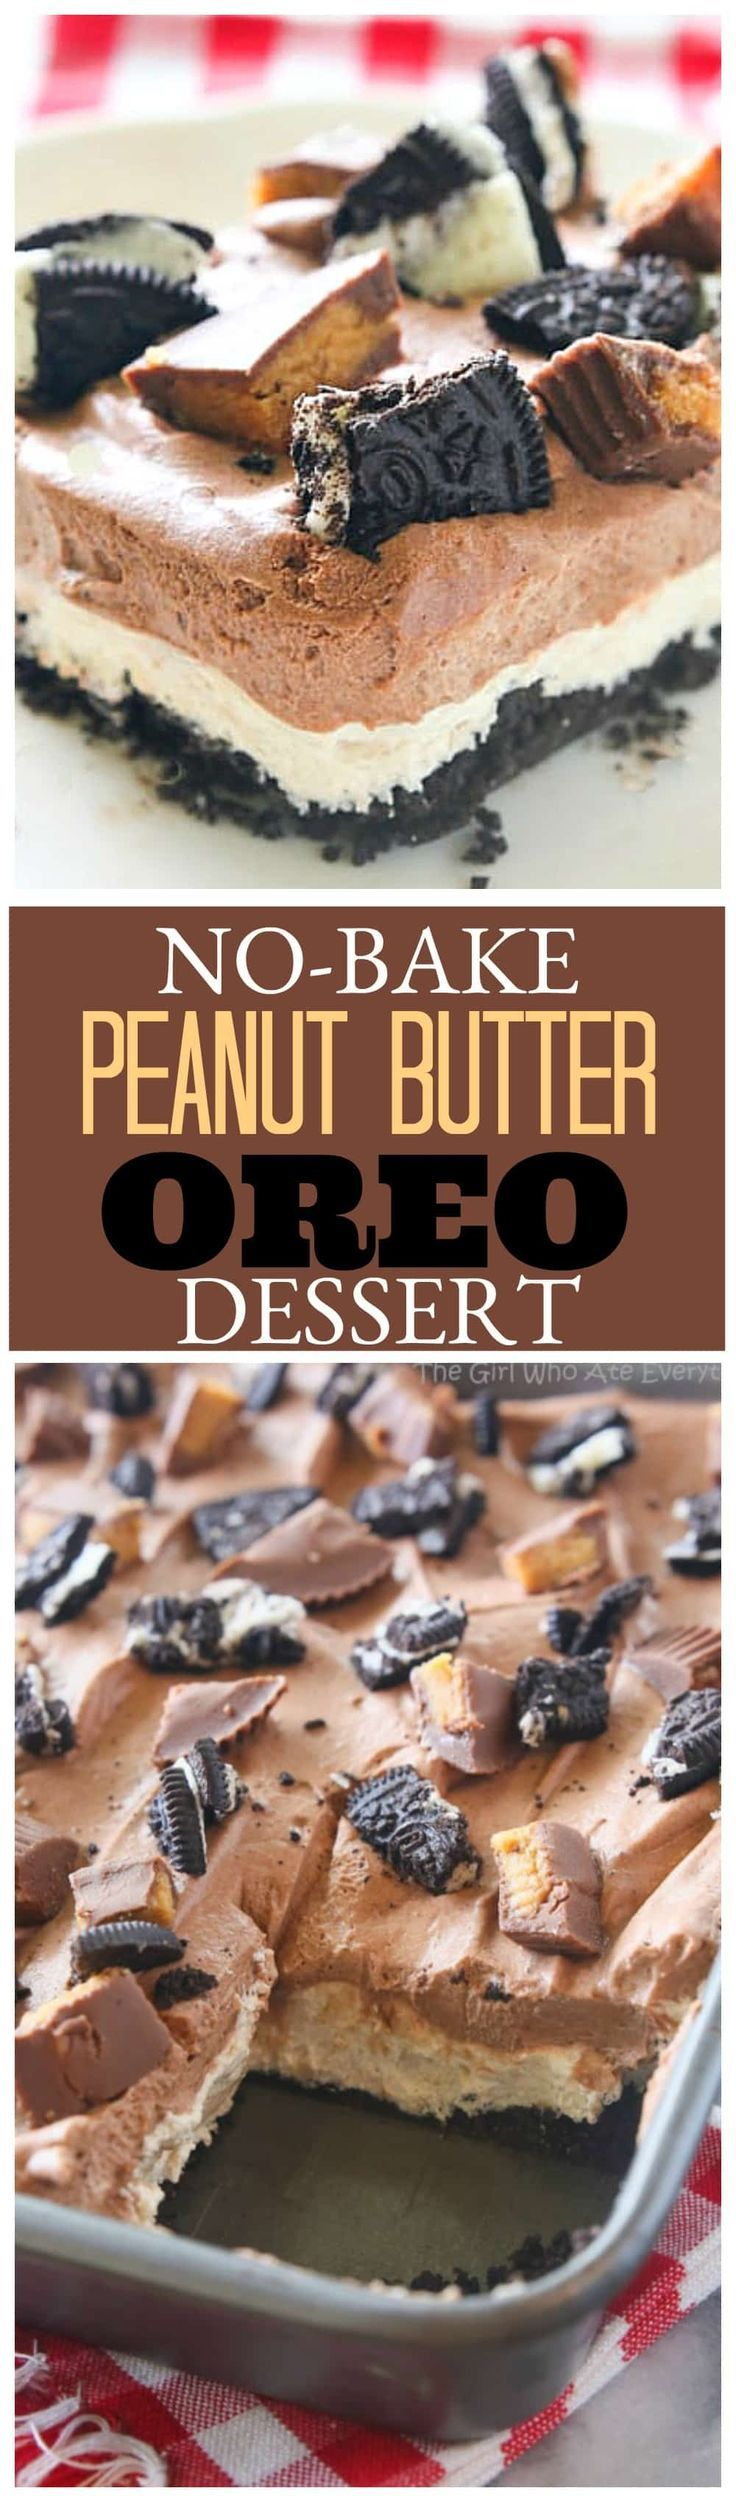 488 best peanut butter desserts images on pinterest delicious no bake peanut butter oreo dessert a crowd pleasing easy dessert great for potlucks forumfinder Image collections